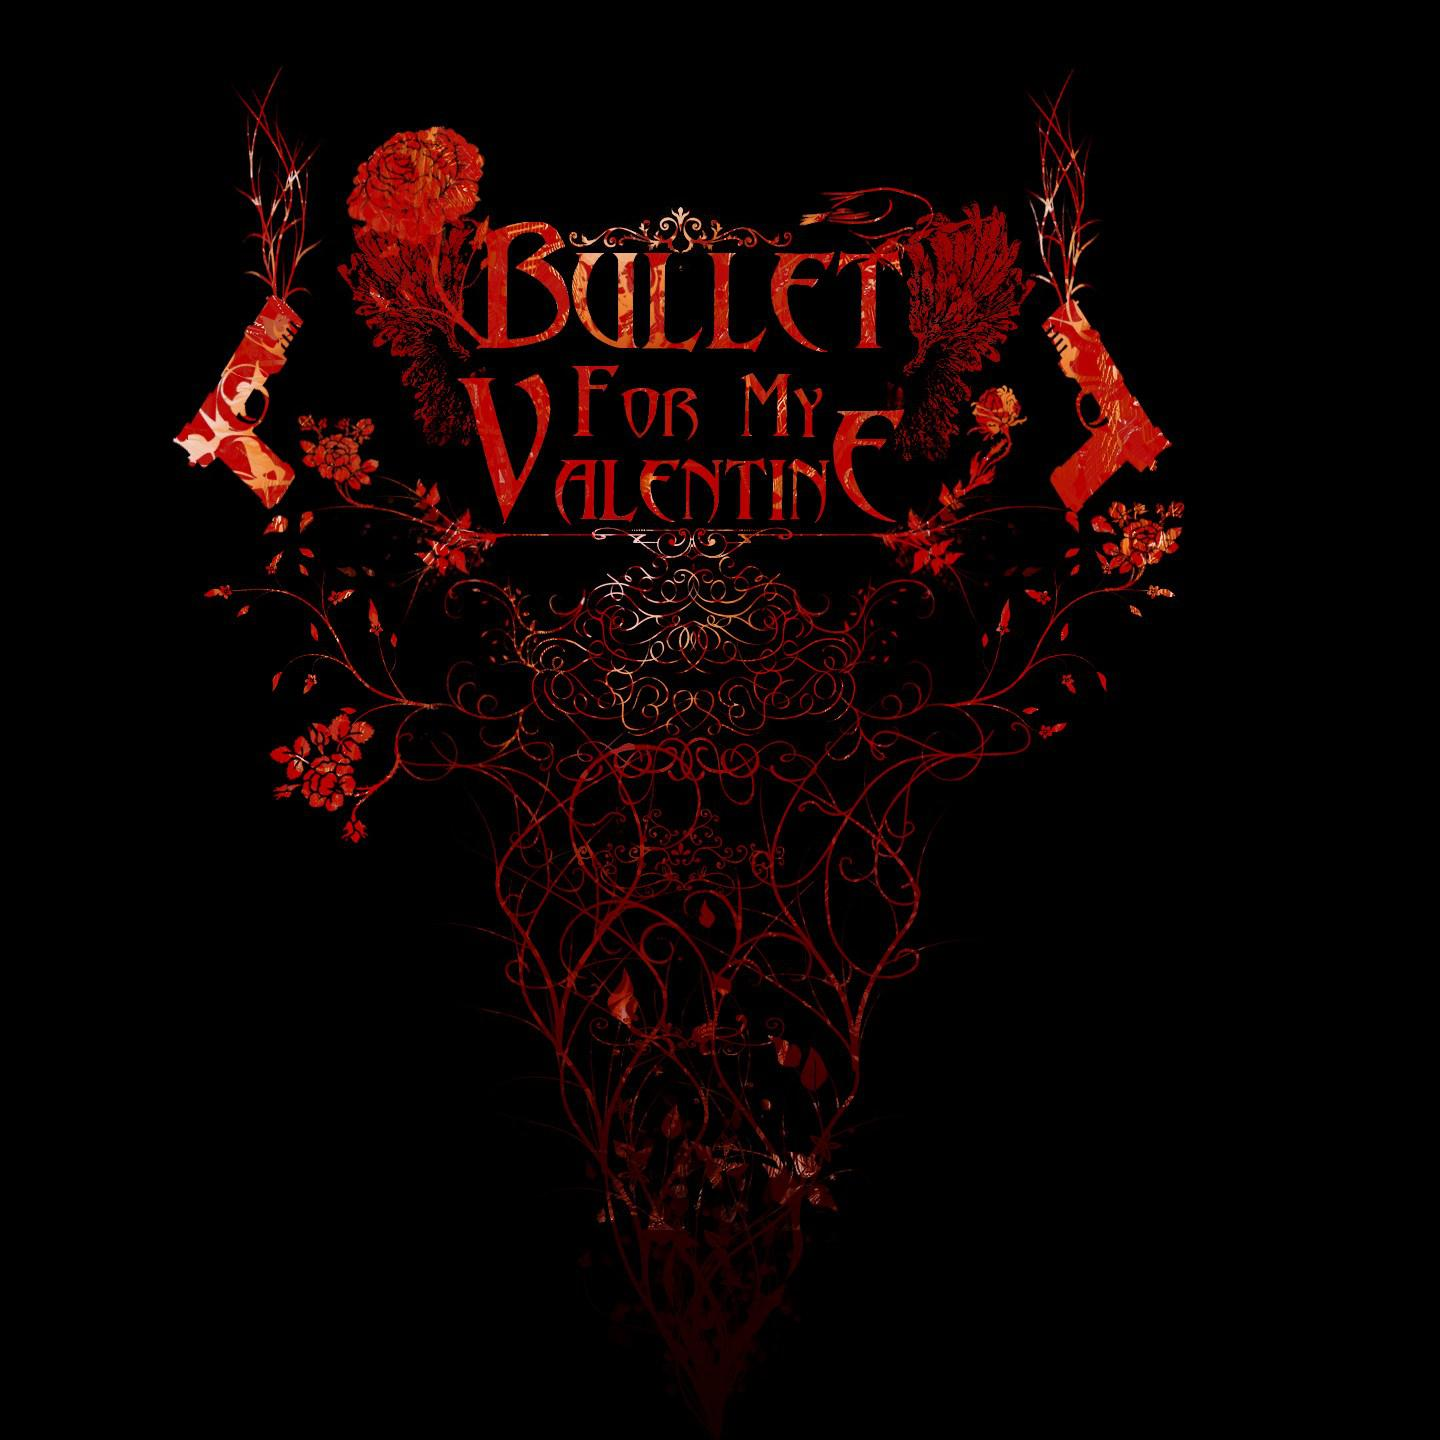 Download wallpaper x bullet for my valentine tattoo